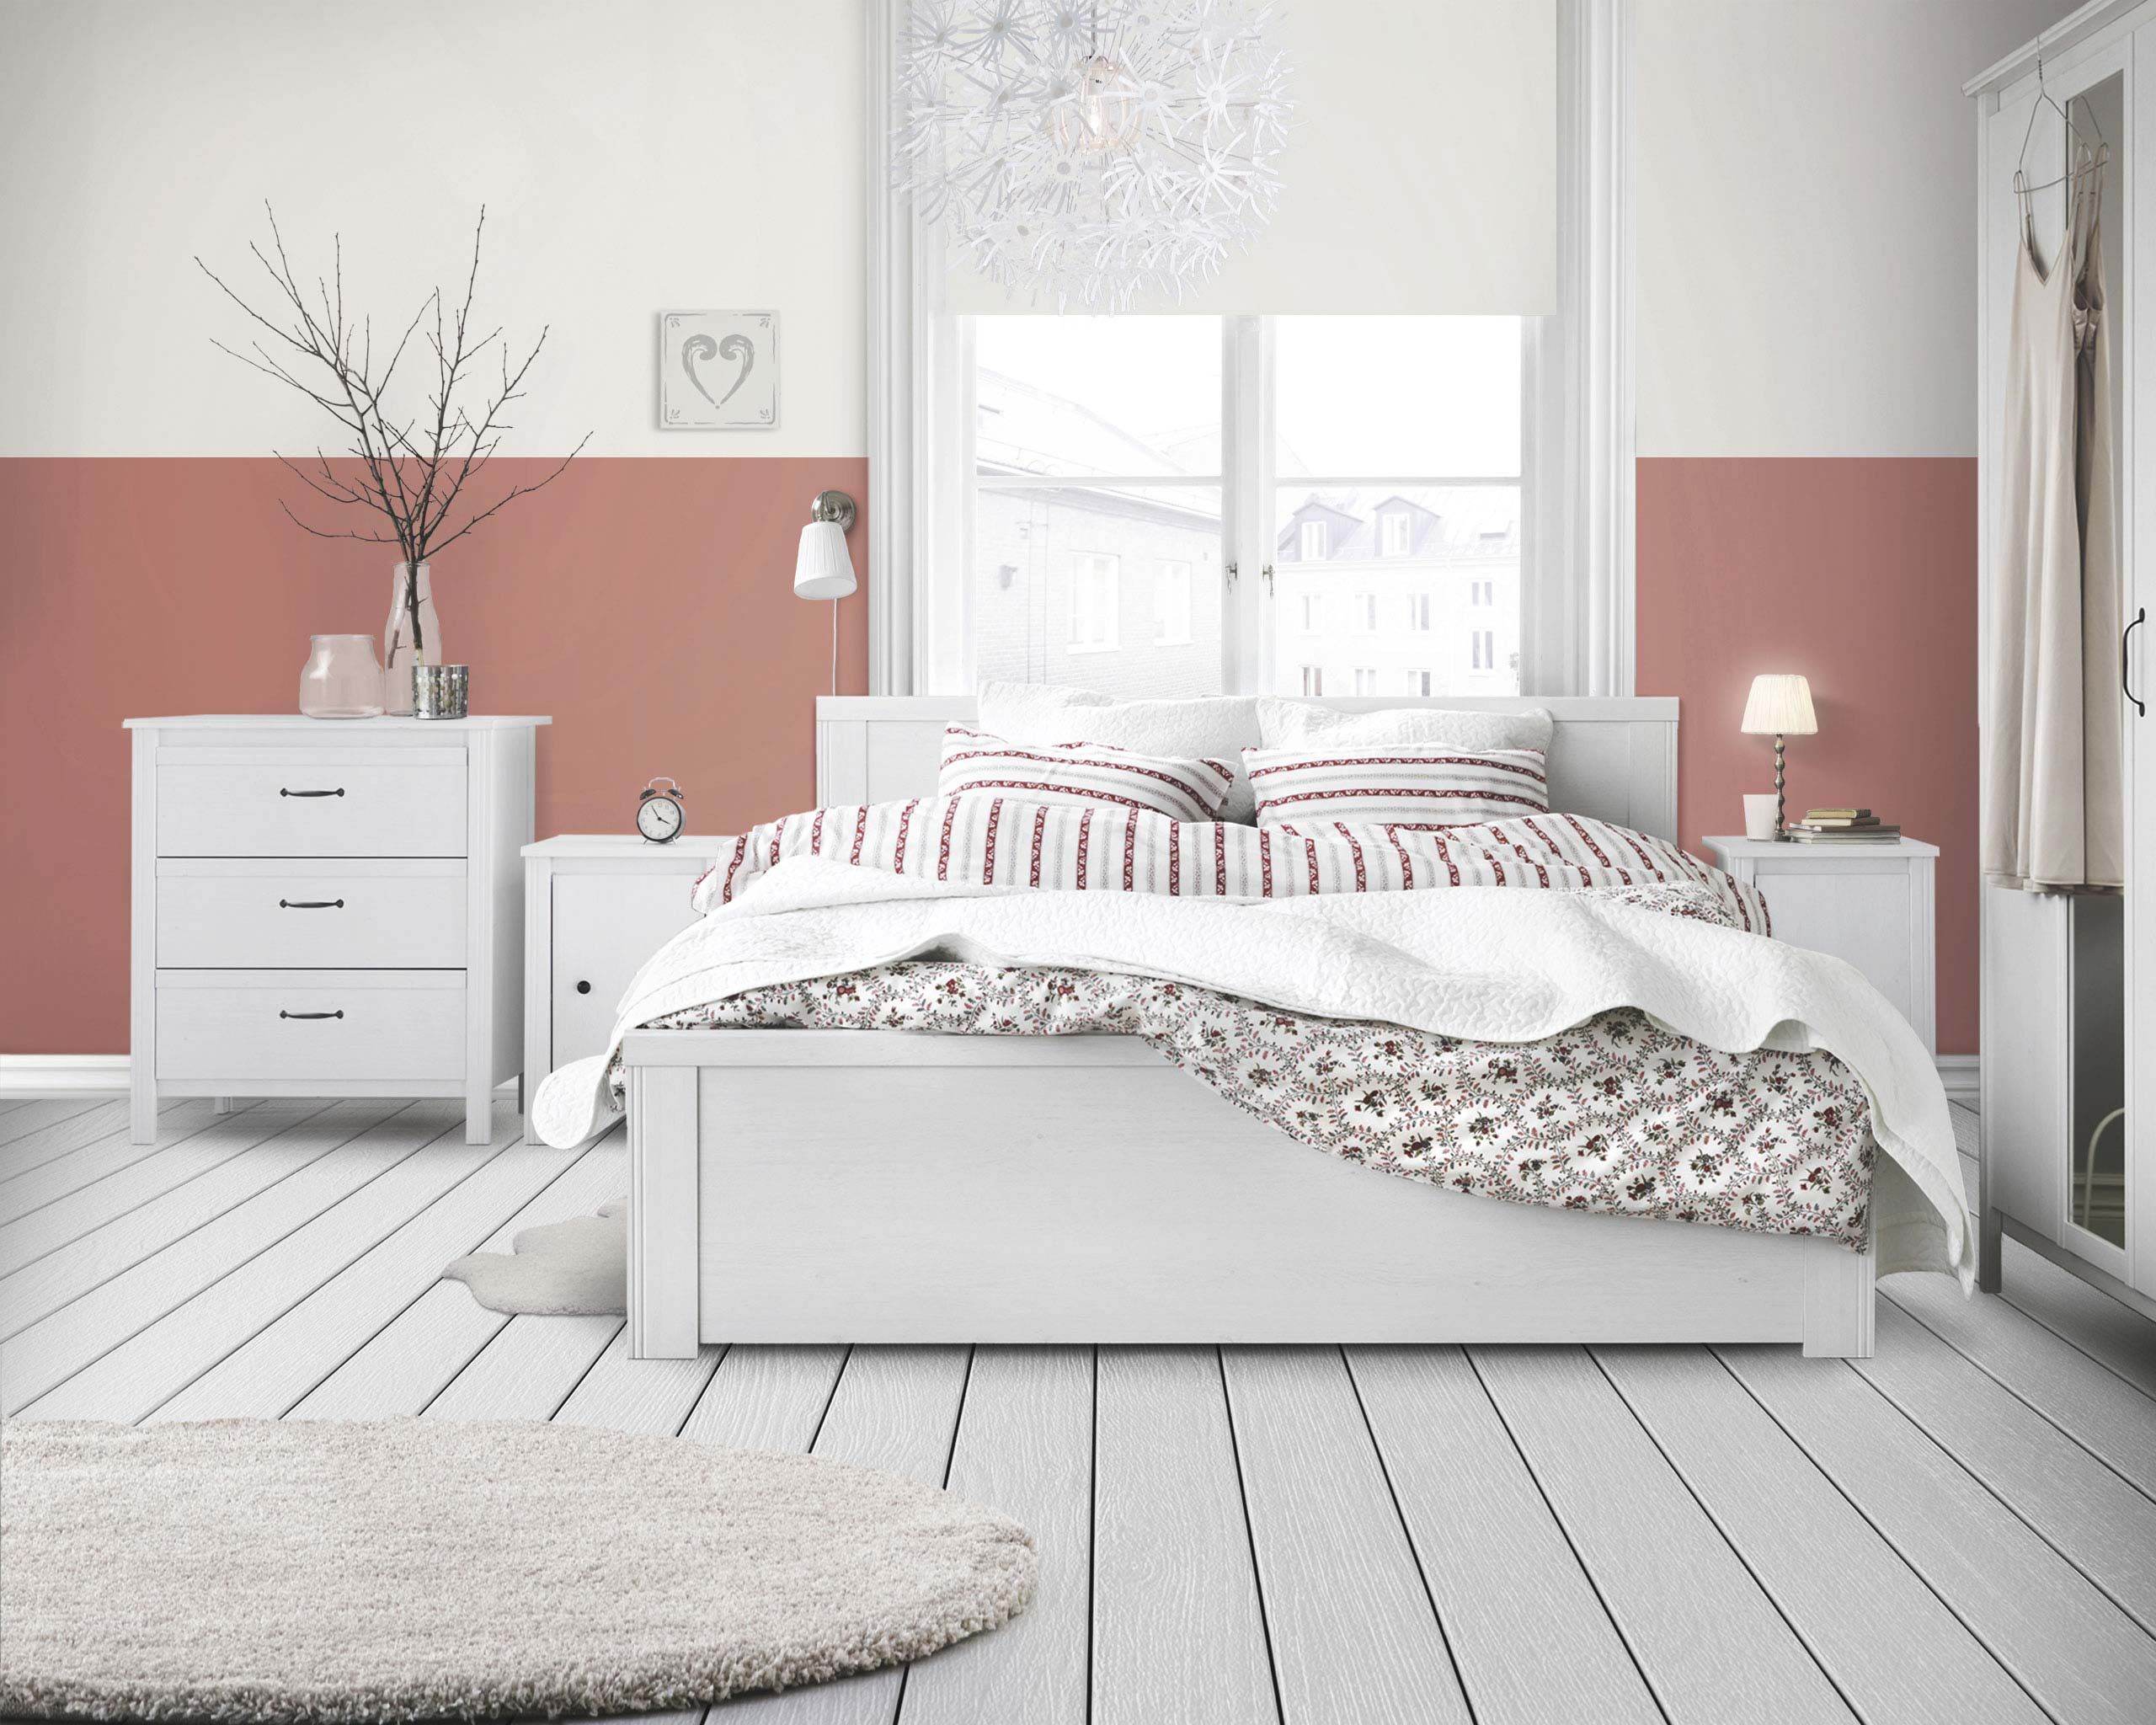 http://arredamentocompleto.ikea.it/1/Camera-da-letto/48/Romantico ...